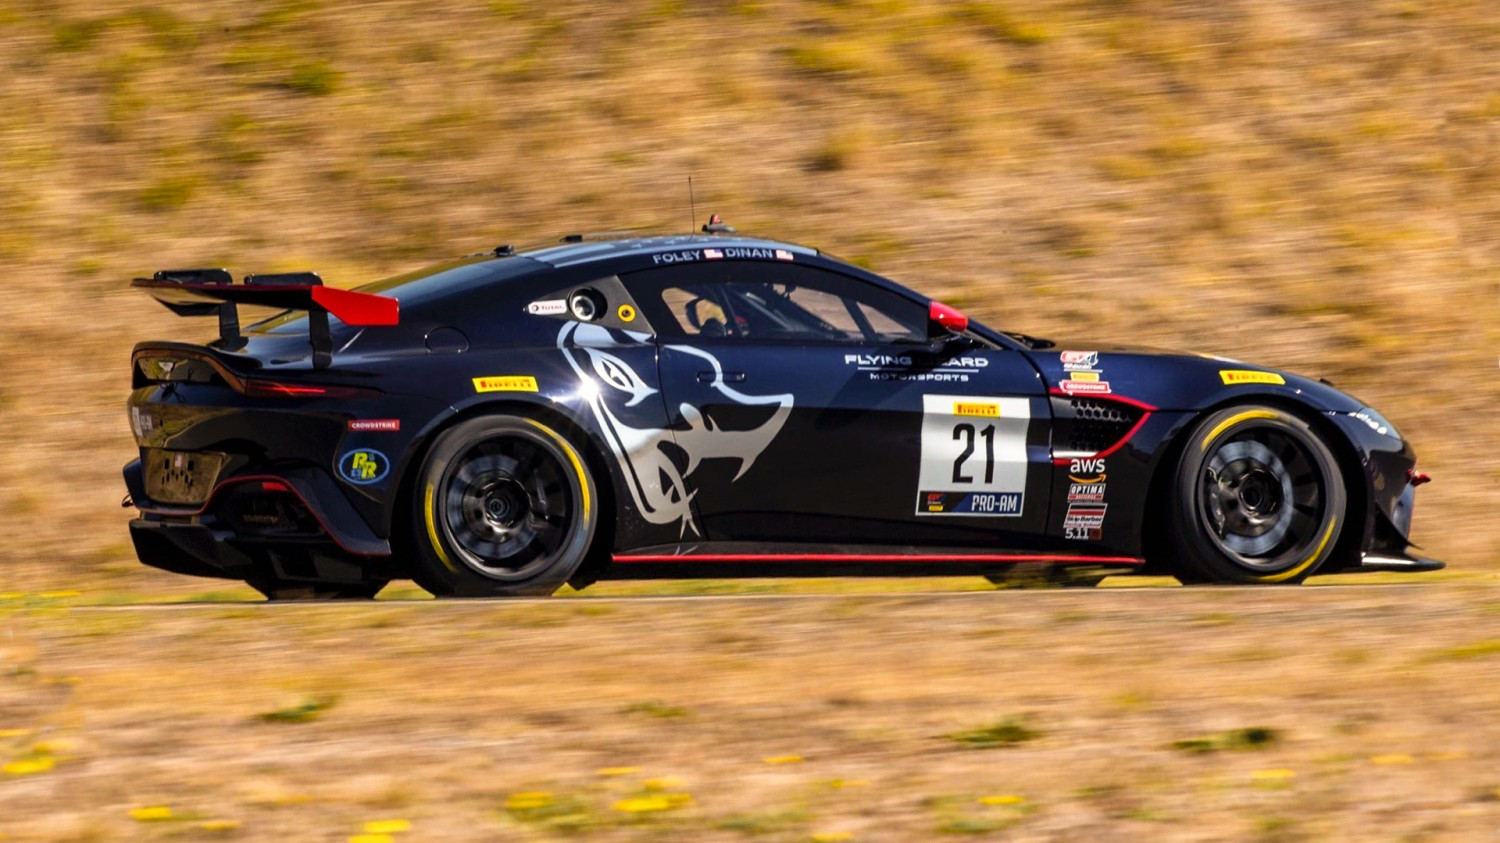 Foley, Dinan Dominant in Home Win for Flying Lizard Motorsports at Sonoma Raceway